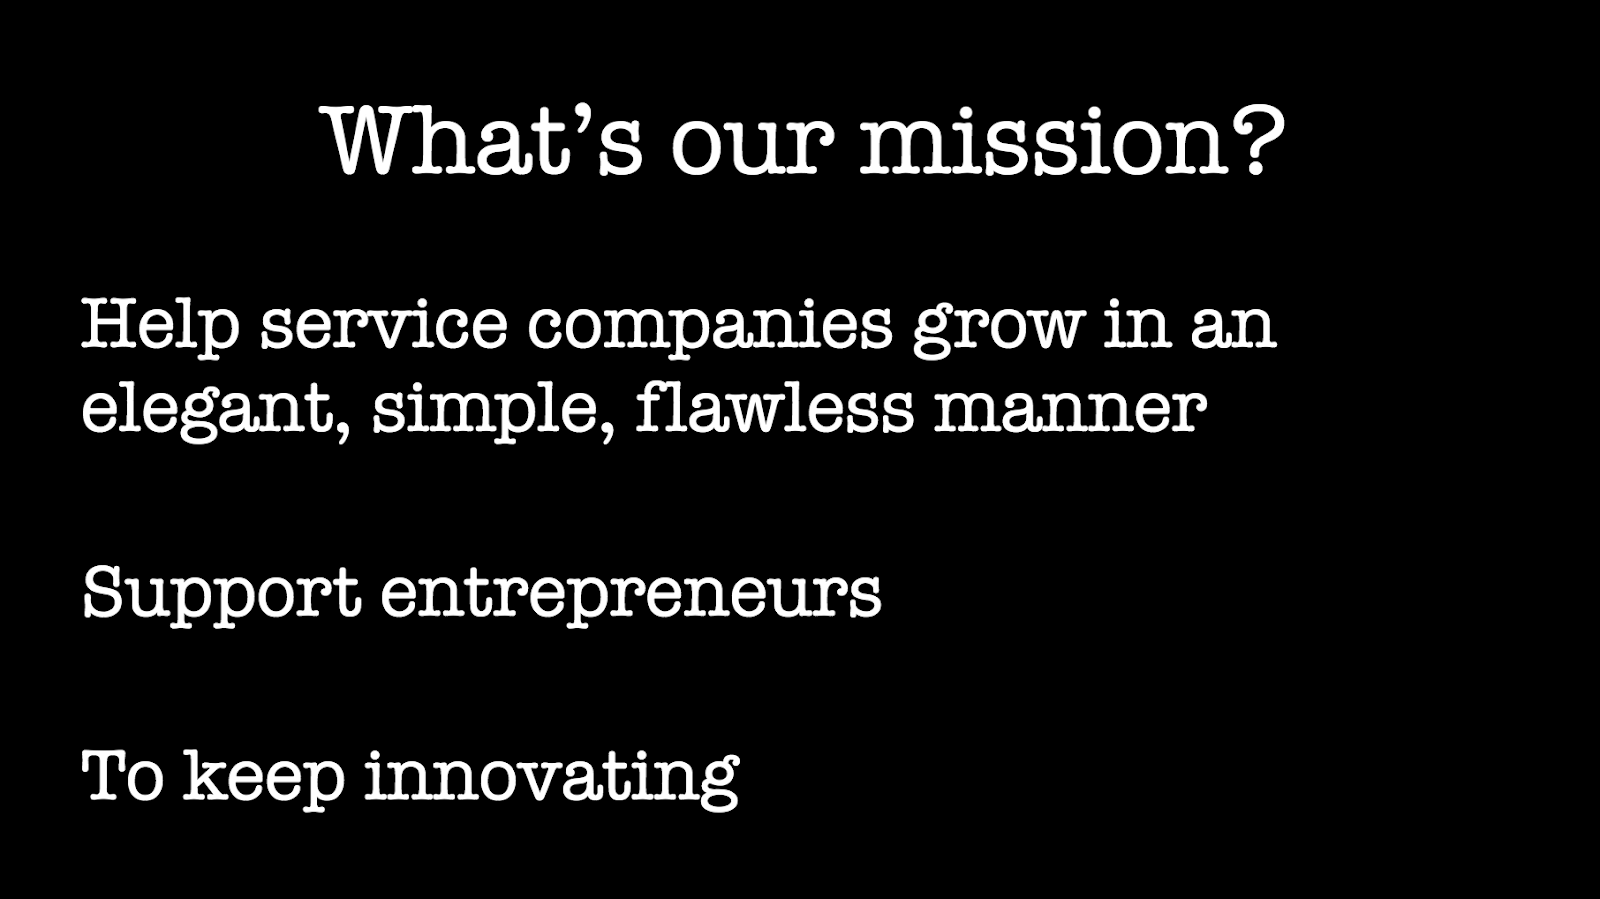 What's our mission?